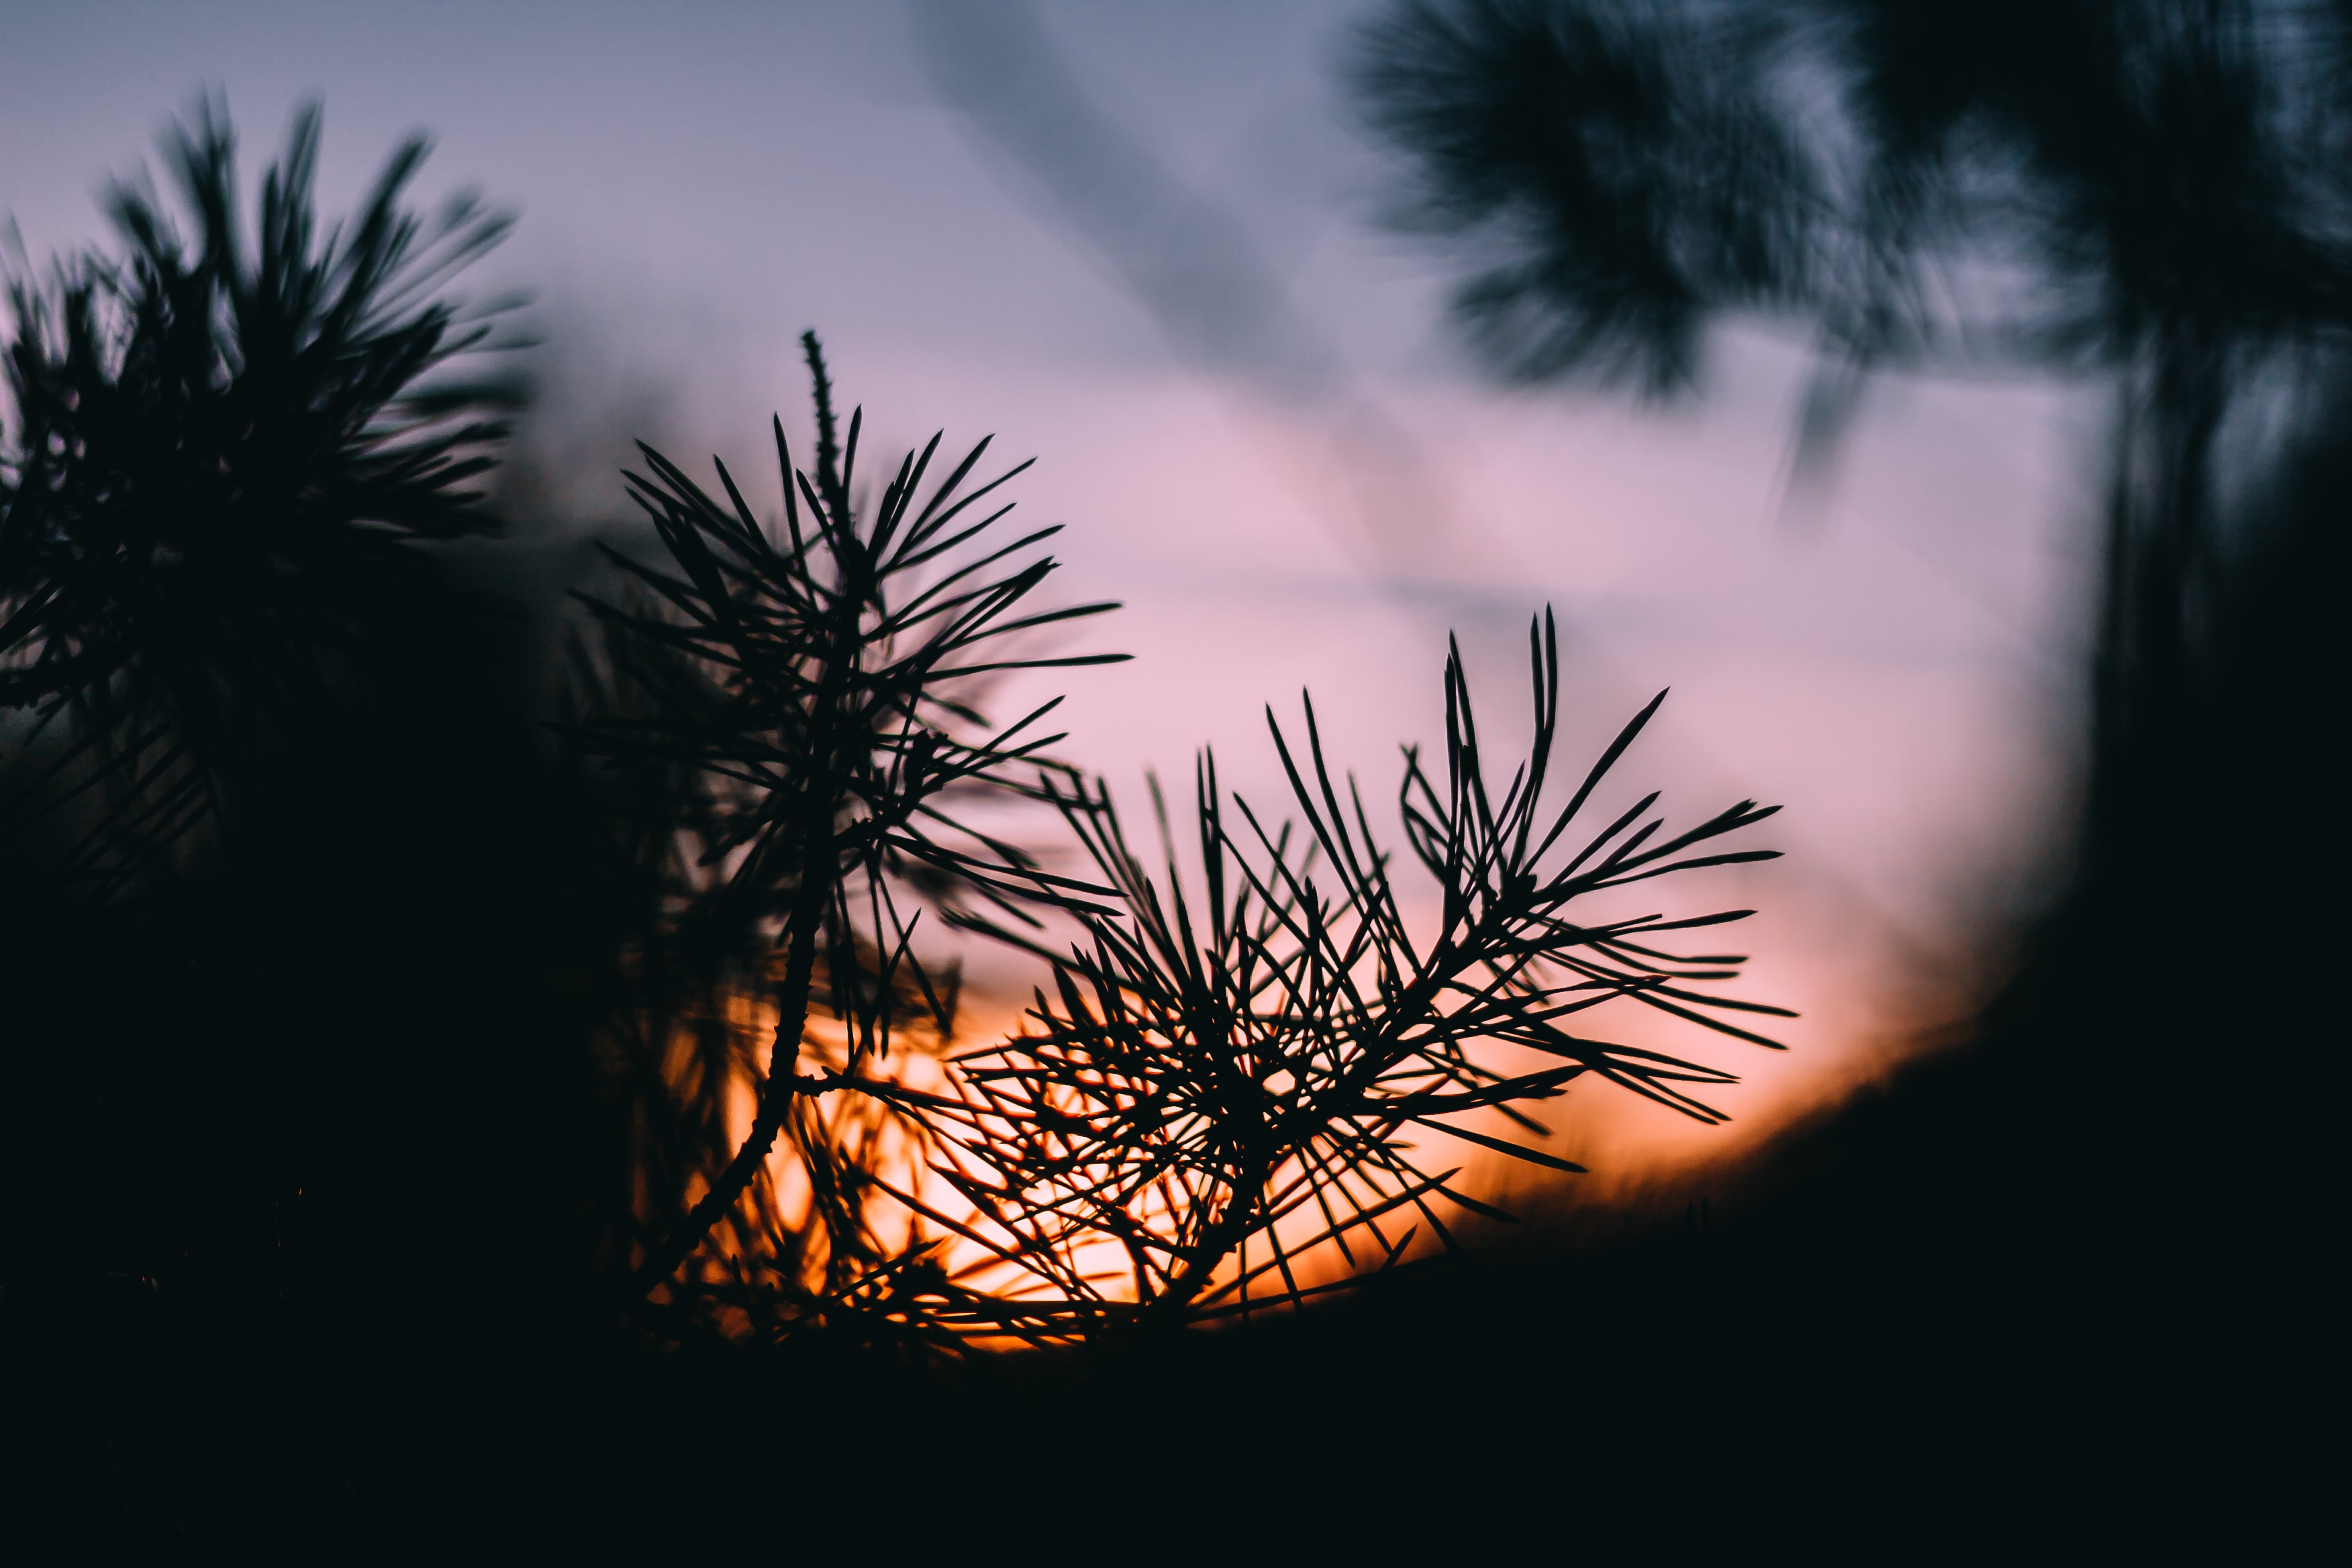 silhouette of plant during golden hour